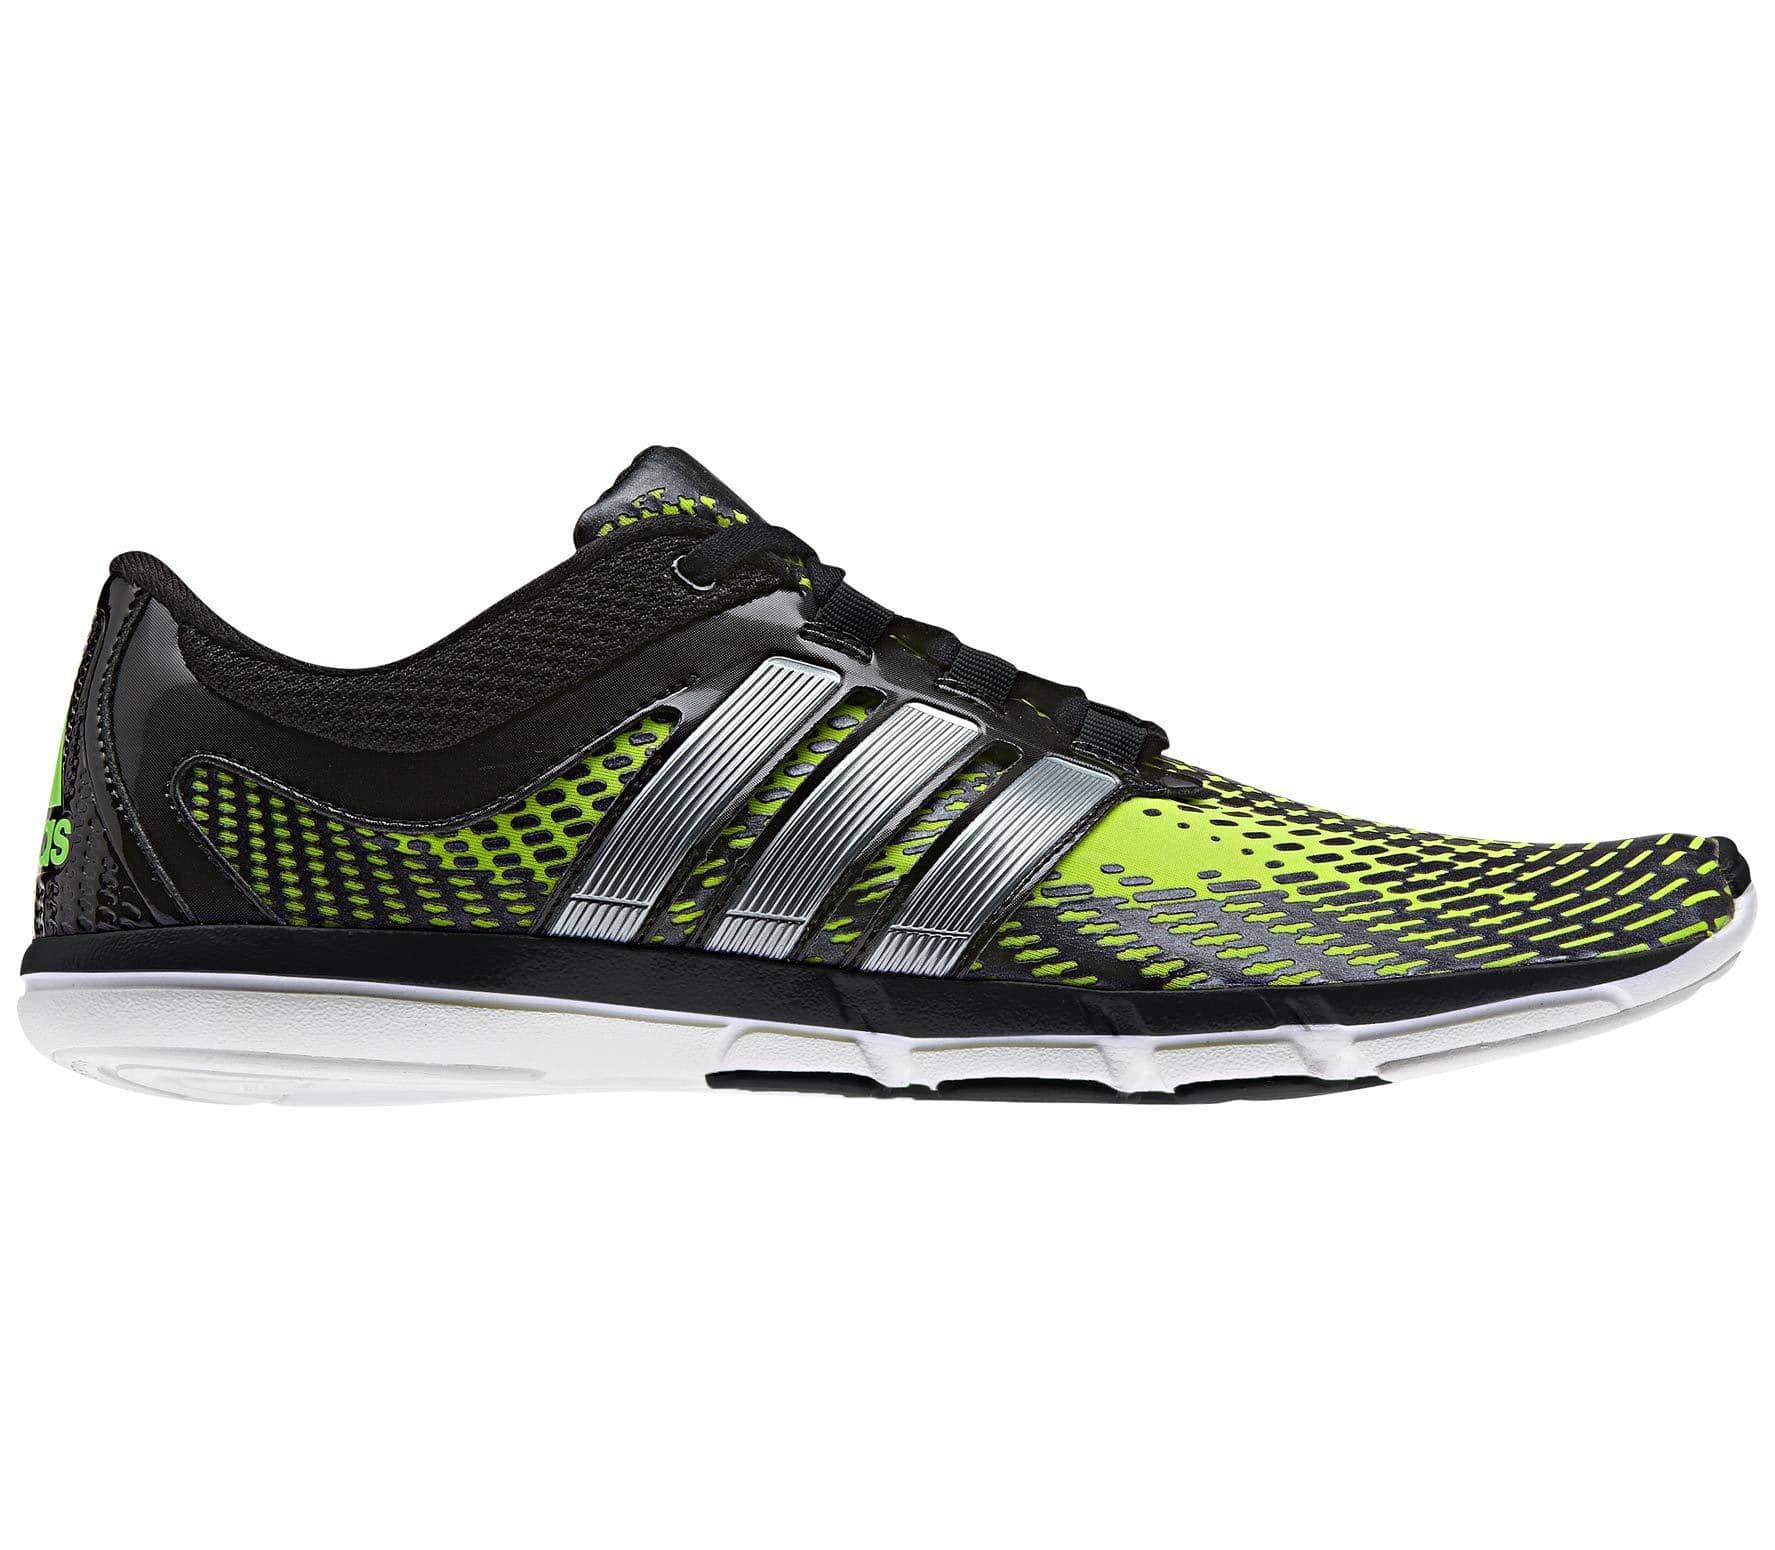 brand new a6535 ce914 Adidas - Adipure Gazelle 2 men s running shoes (green black)